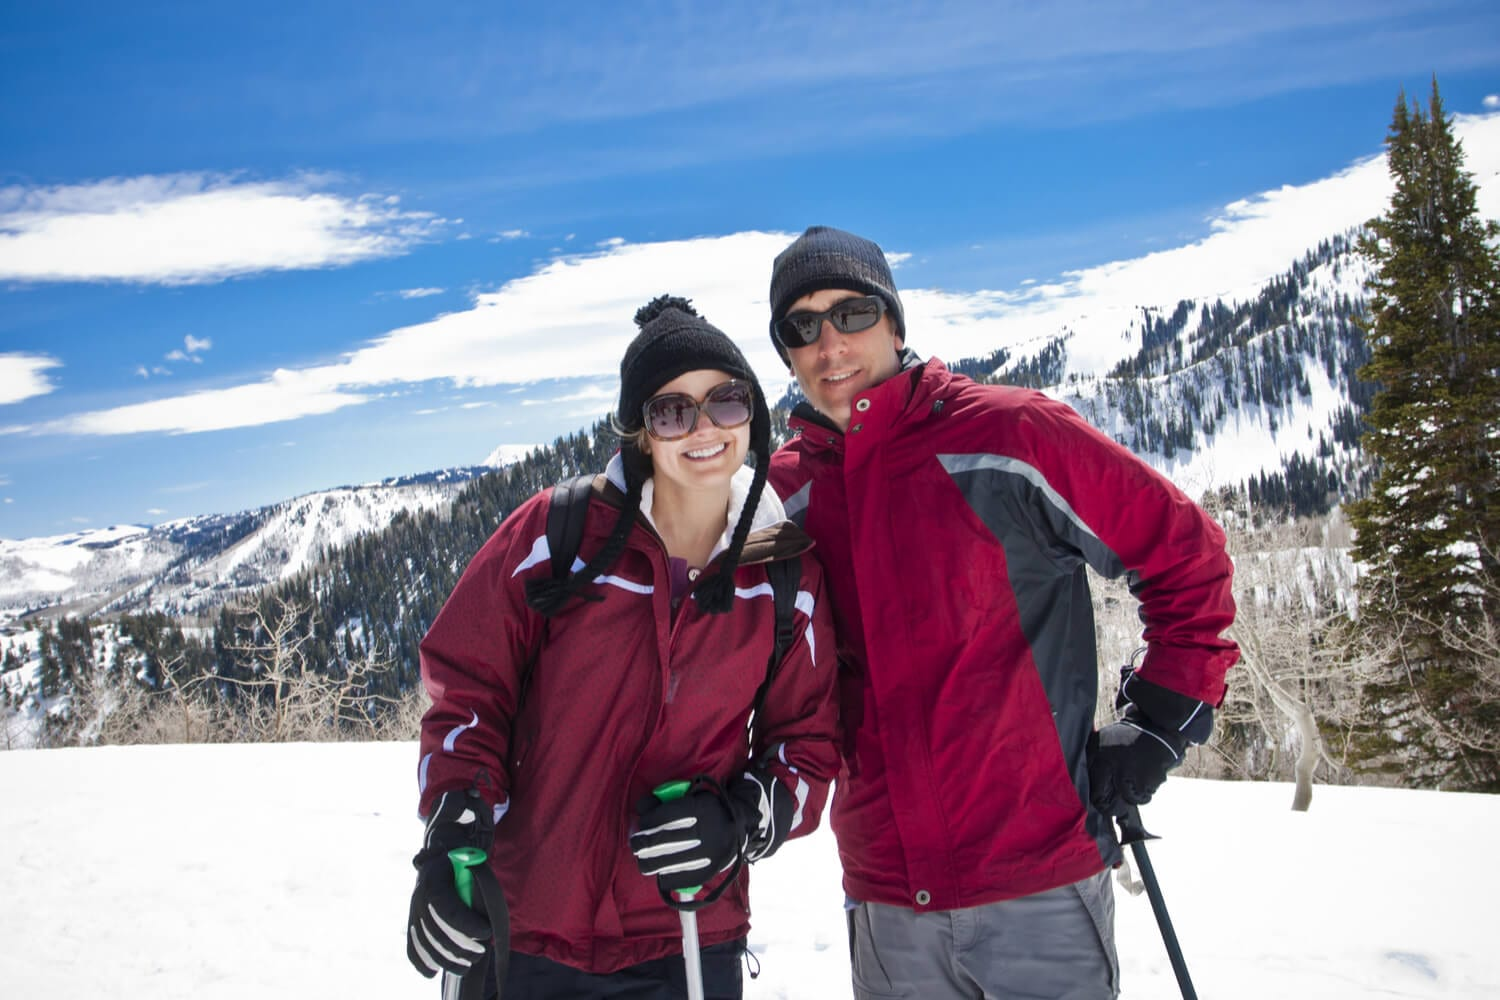 A outdoor enthusiast couple happily avoids crowds while skiing in Colorado.